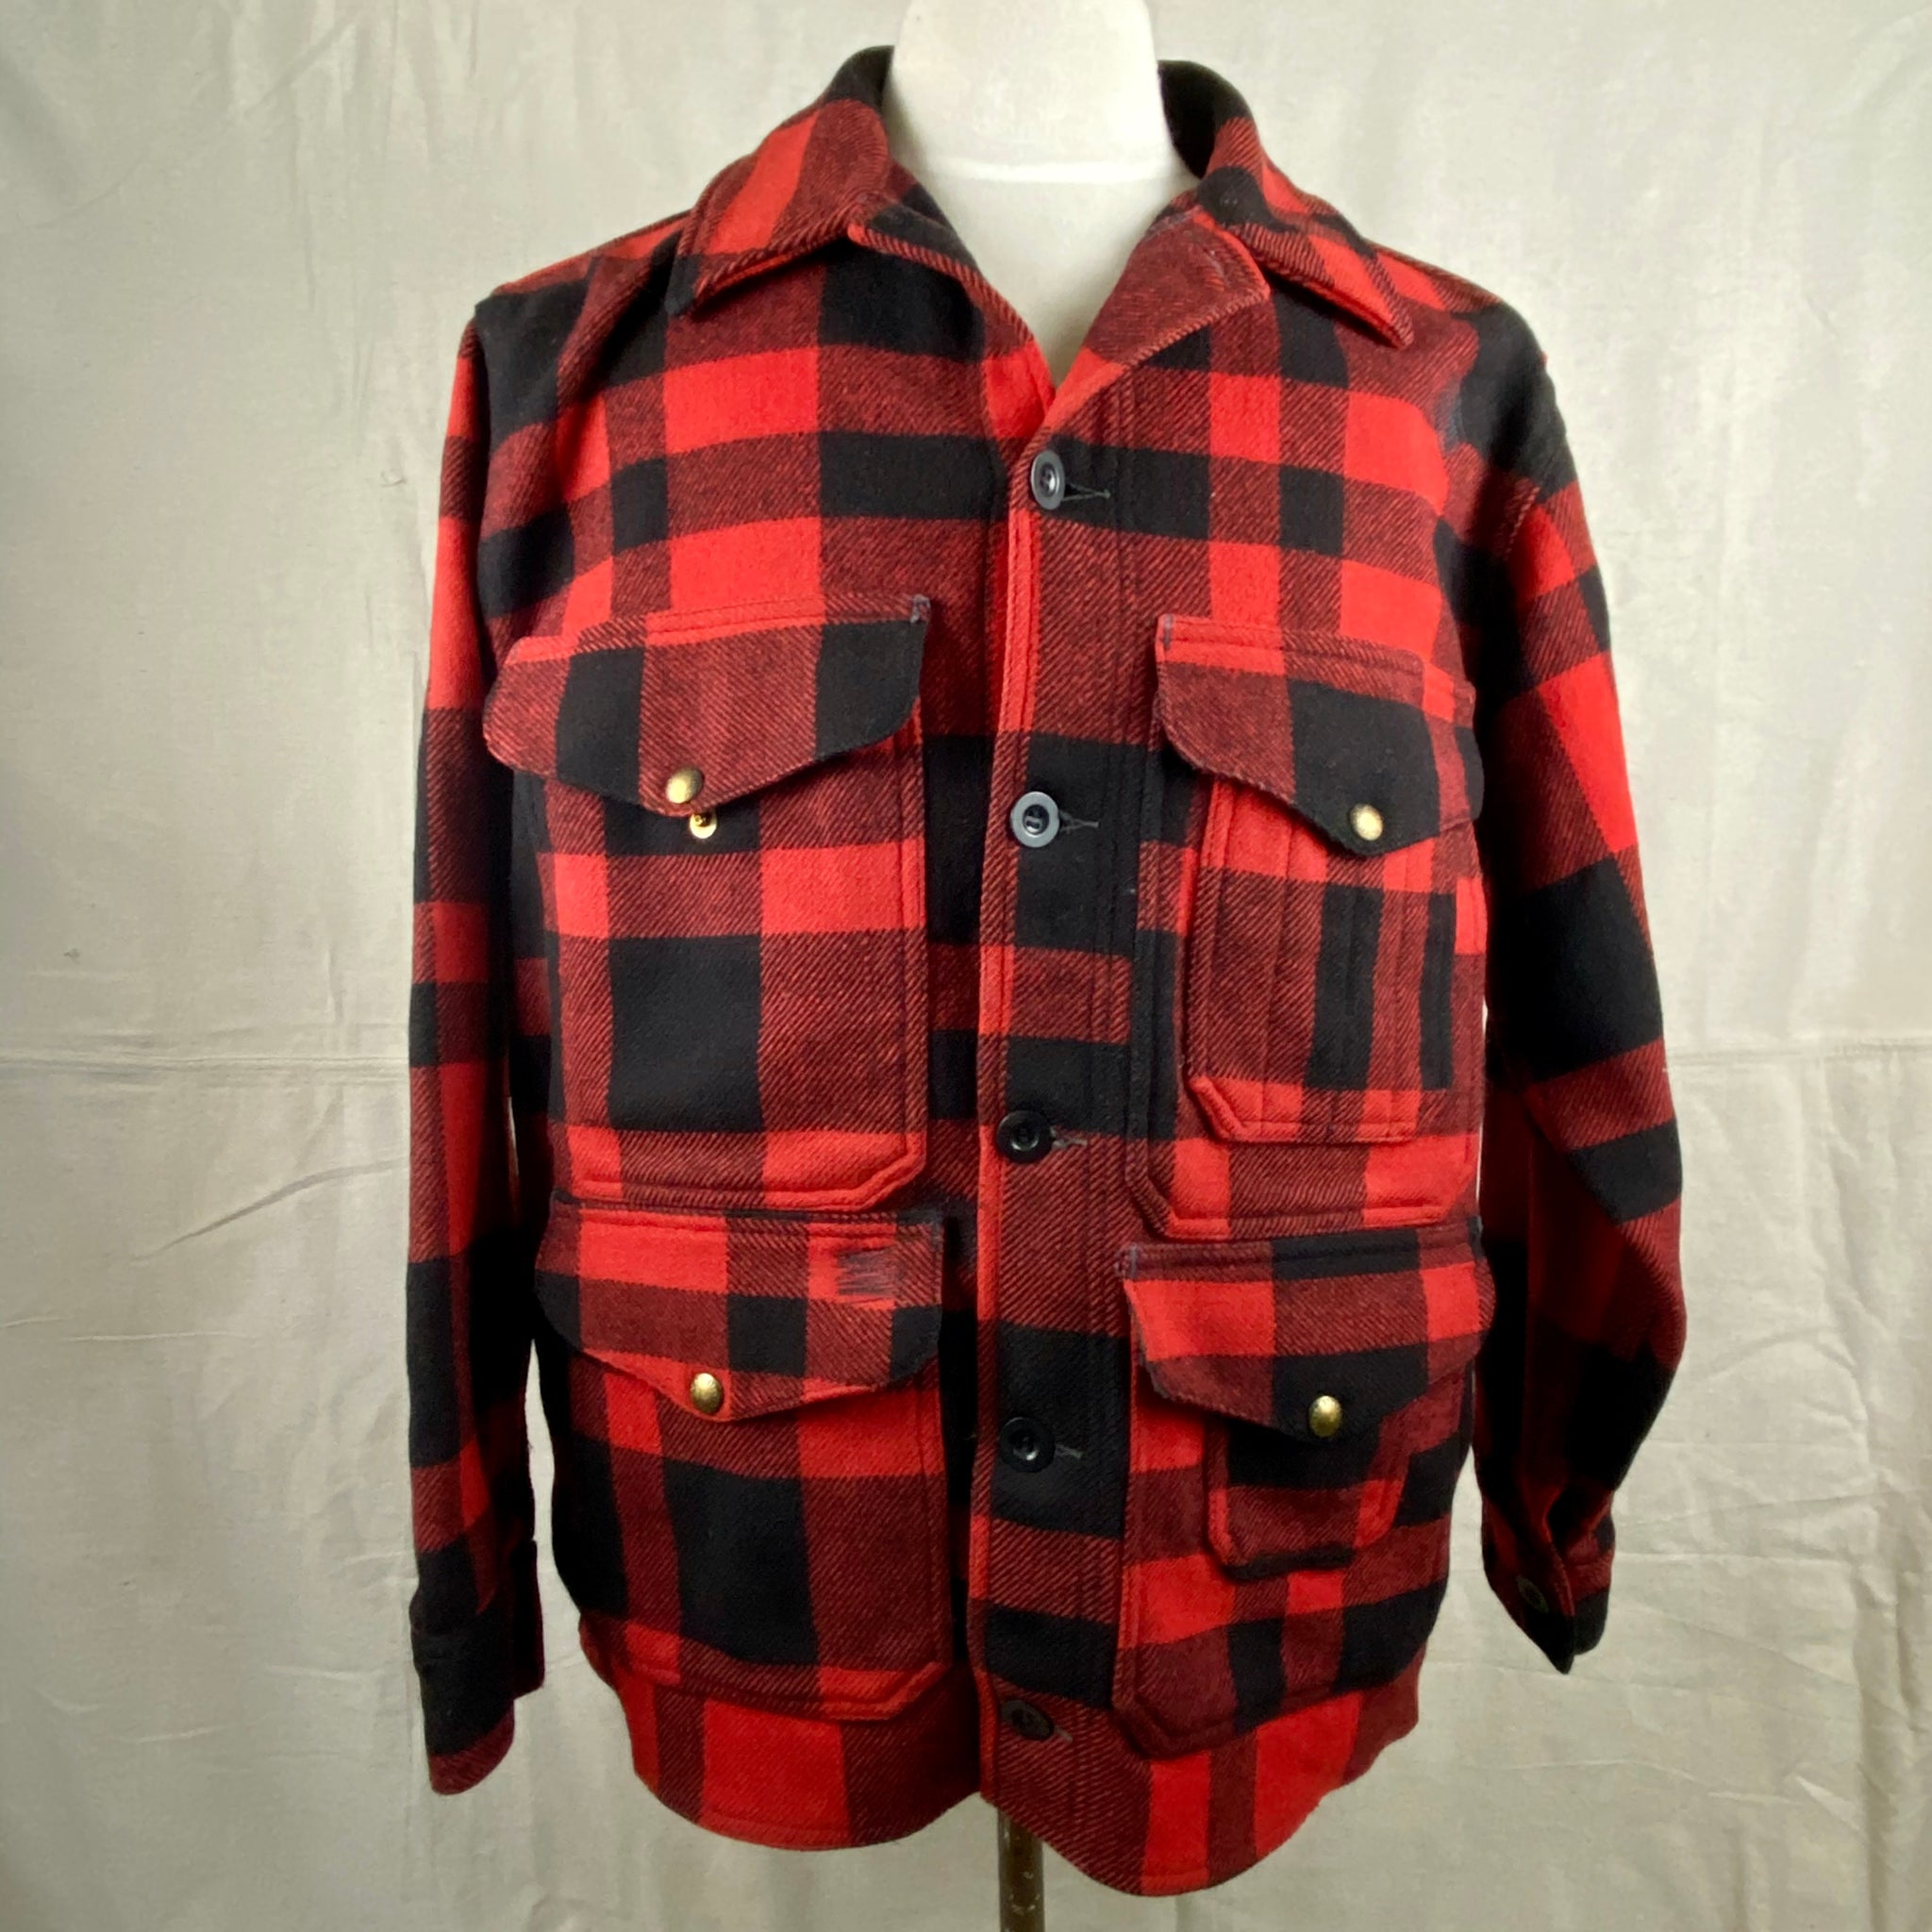 Front View on Vintage Union Made Filson Mackinaw Wool Cruiser Red and Black Buffalo Plaid